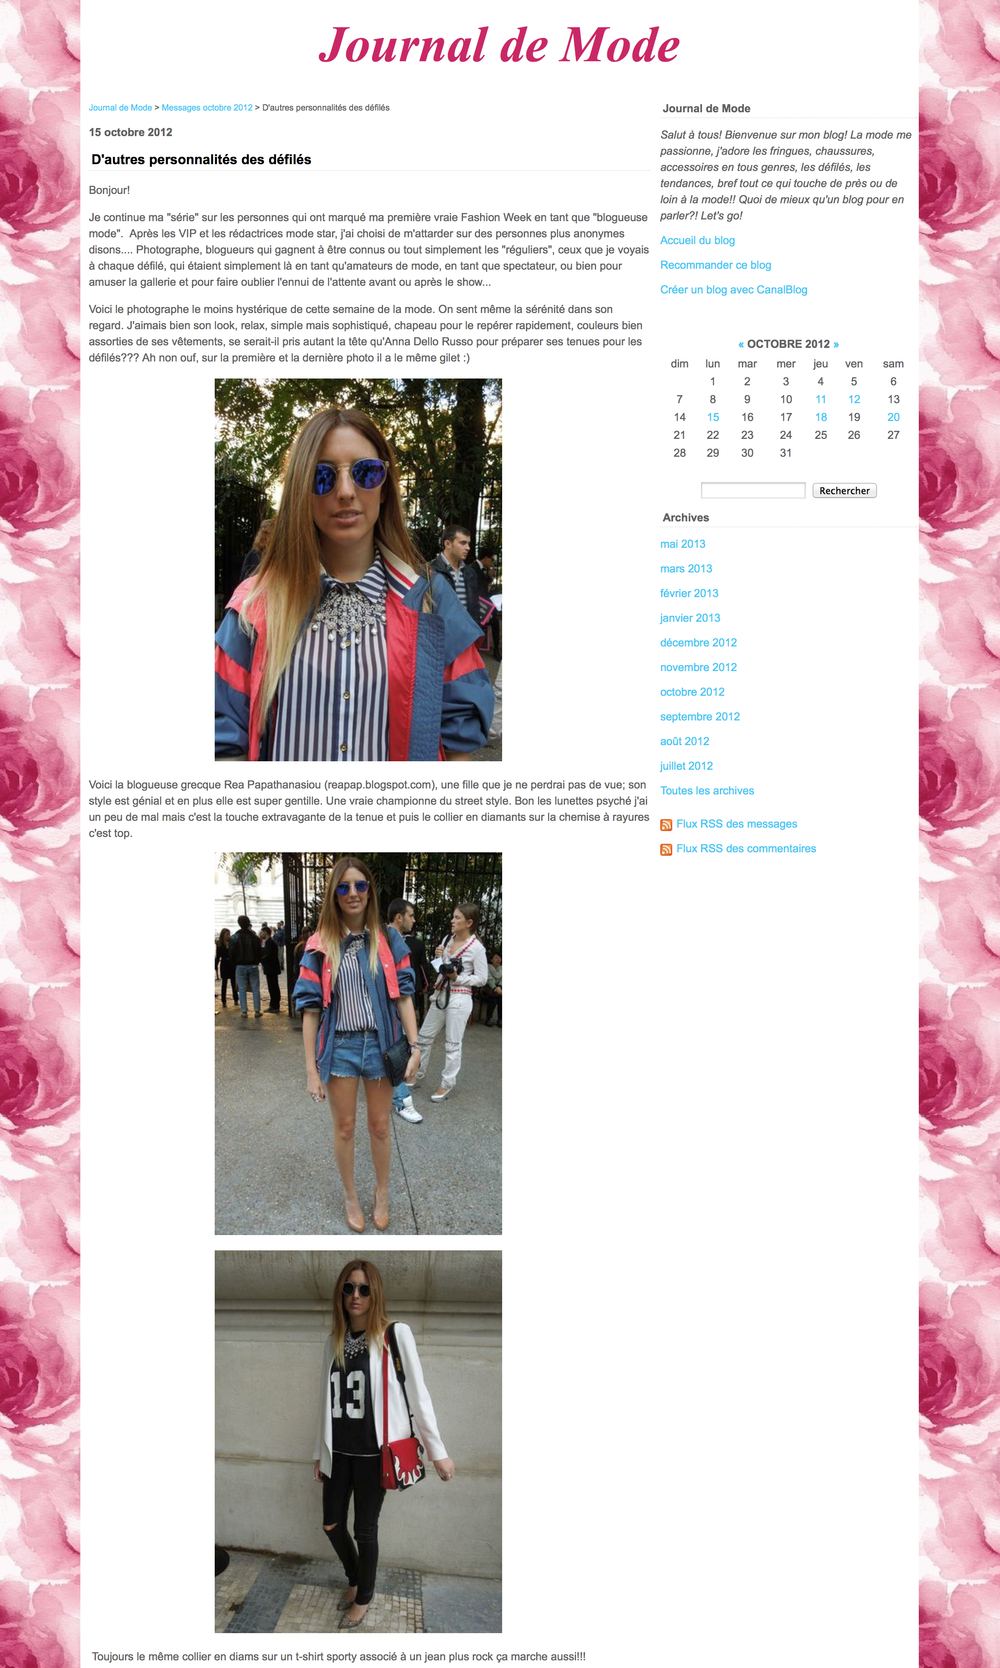 Journal de mode   Paris fashion week  October 2012